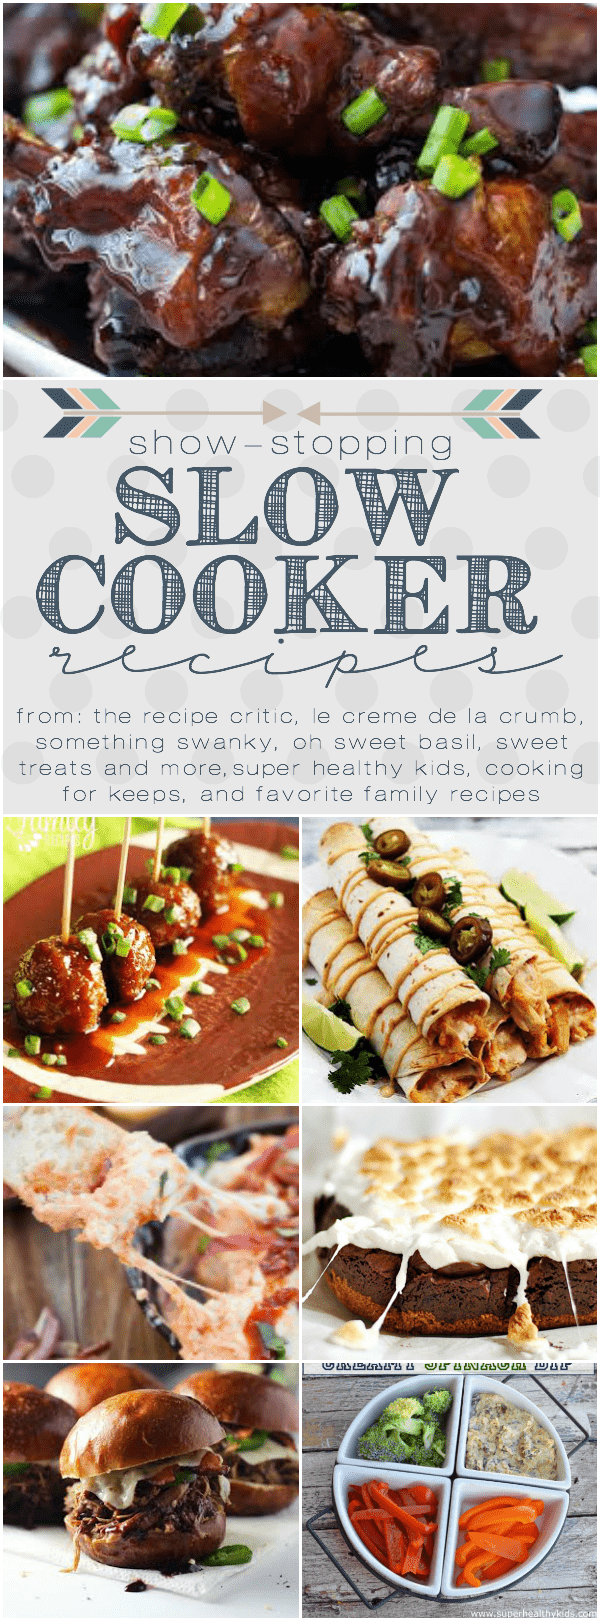 7 Show-Stopping Slow Cooker recipes